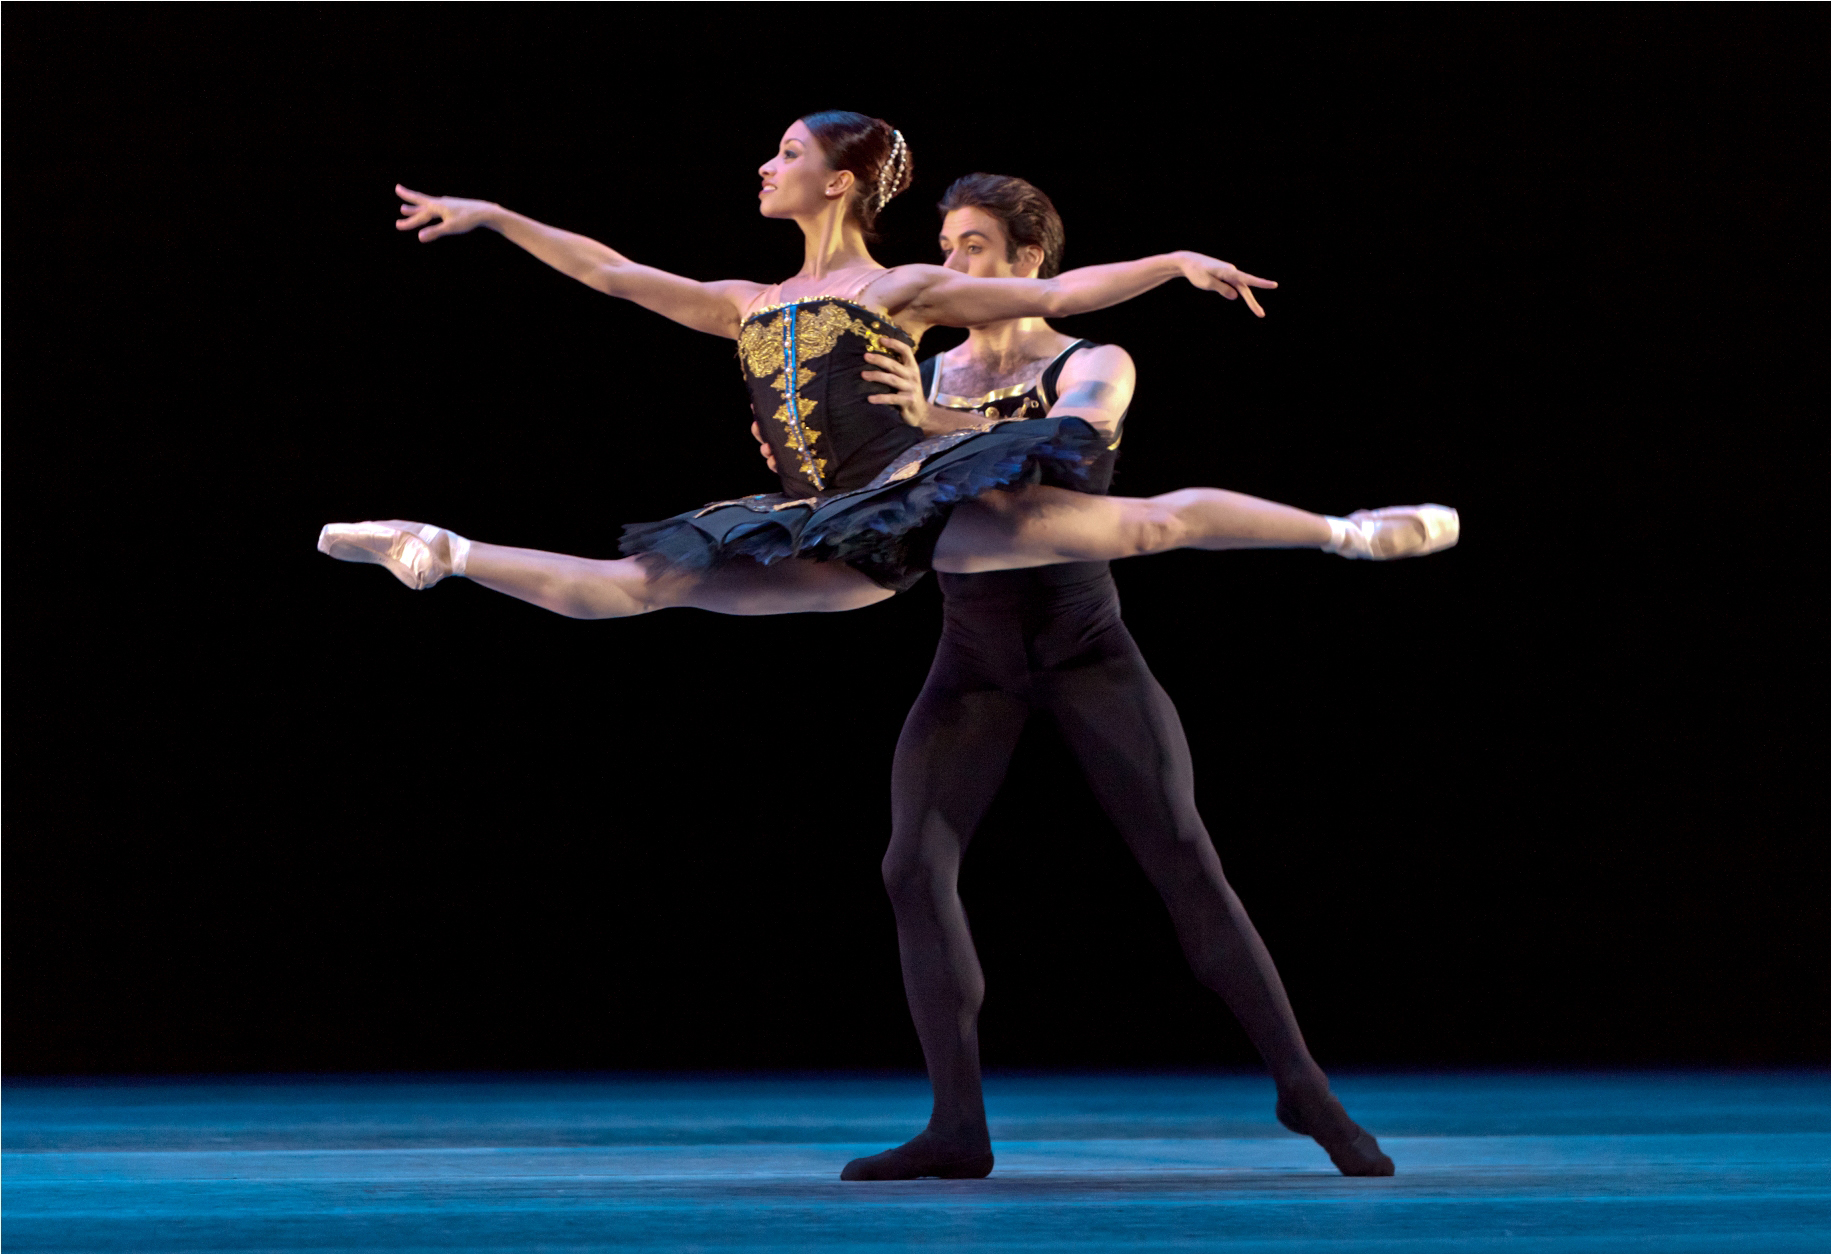 Houston Ballet, operated by Houston Ballet Foundation, is the fourth-largest professional ballet company in the United States, based in Houston, Texas. The foundation also maintains a ballet academy, the Houston Ballet Academy, which trains more than half of the company's dancers. [2].